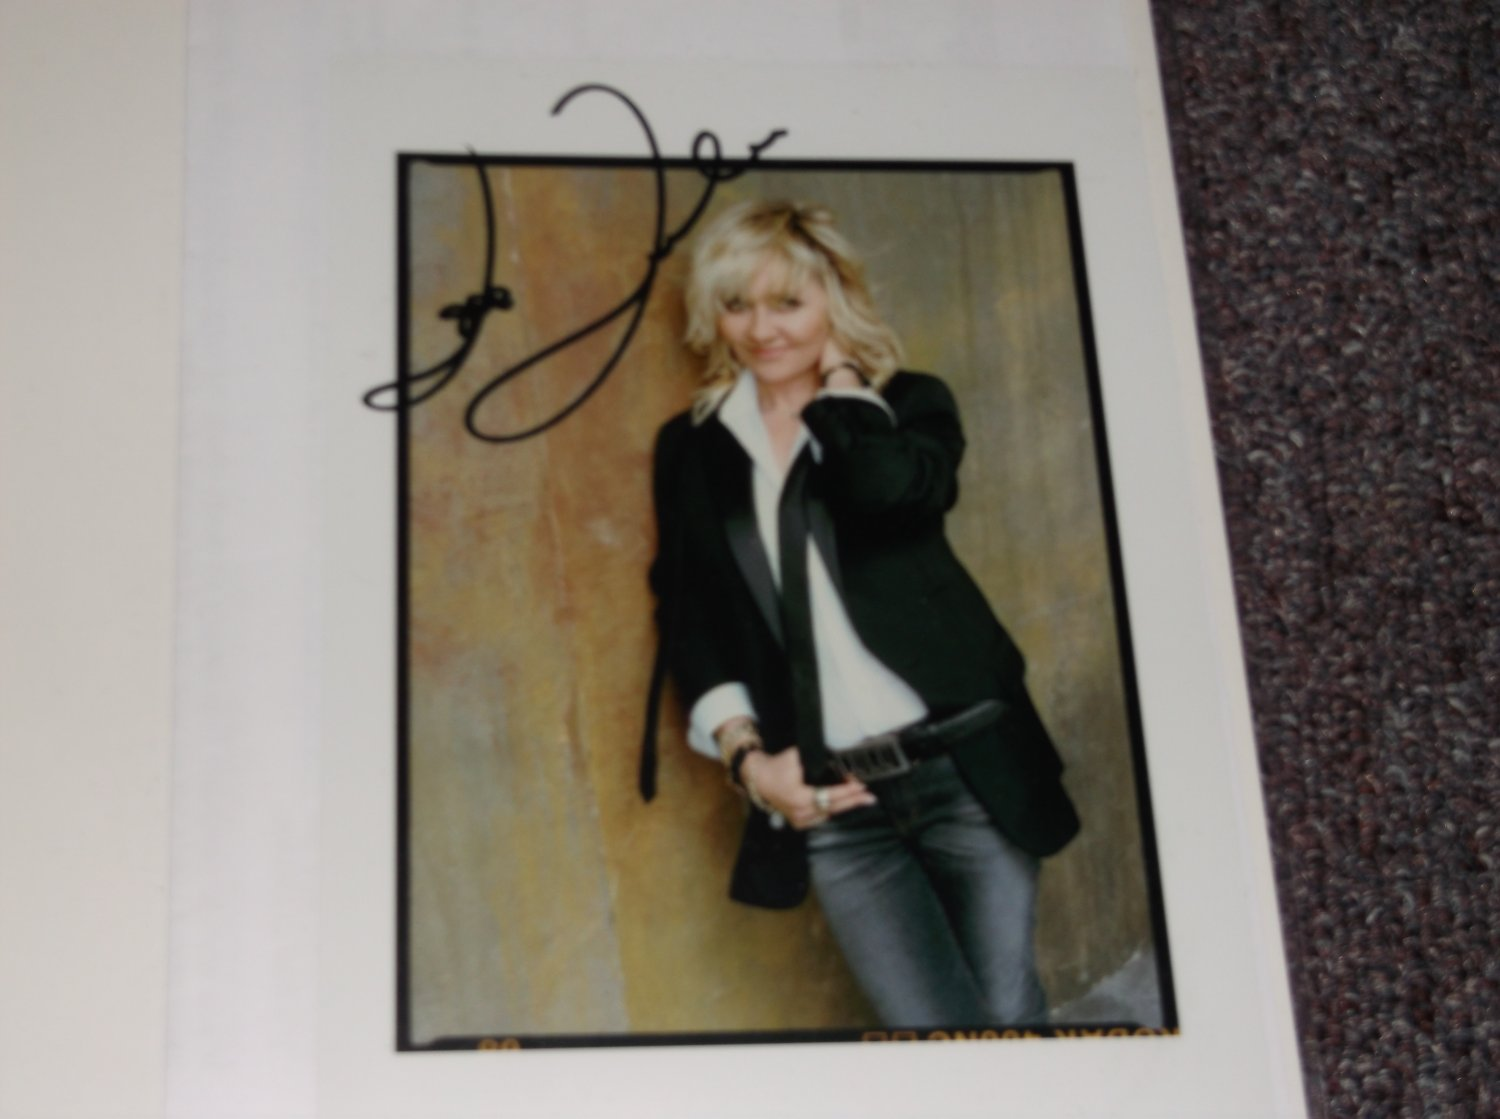 Lulu signed 5x7 photo probably a reprint